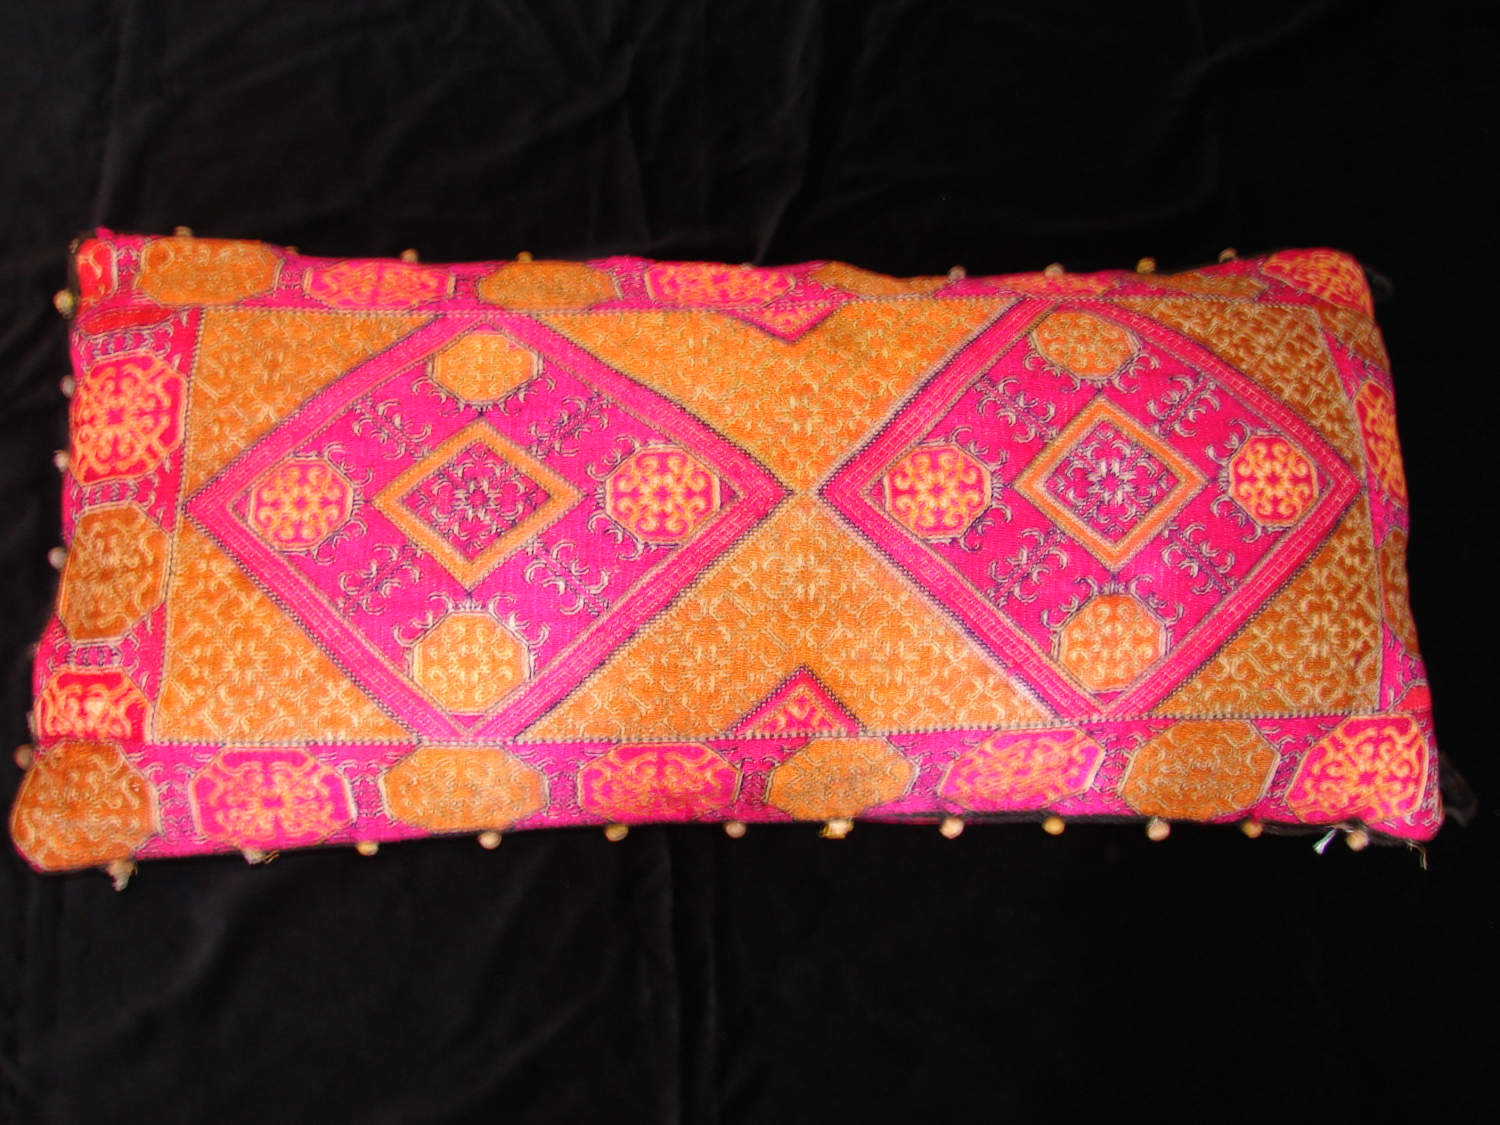 A vintage embroidered Afghan wedding pillow